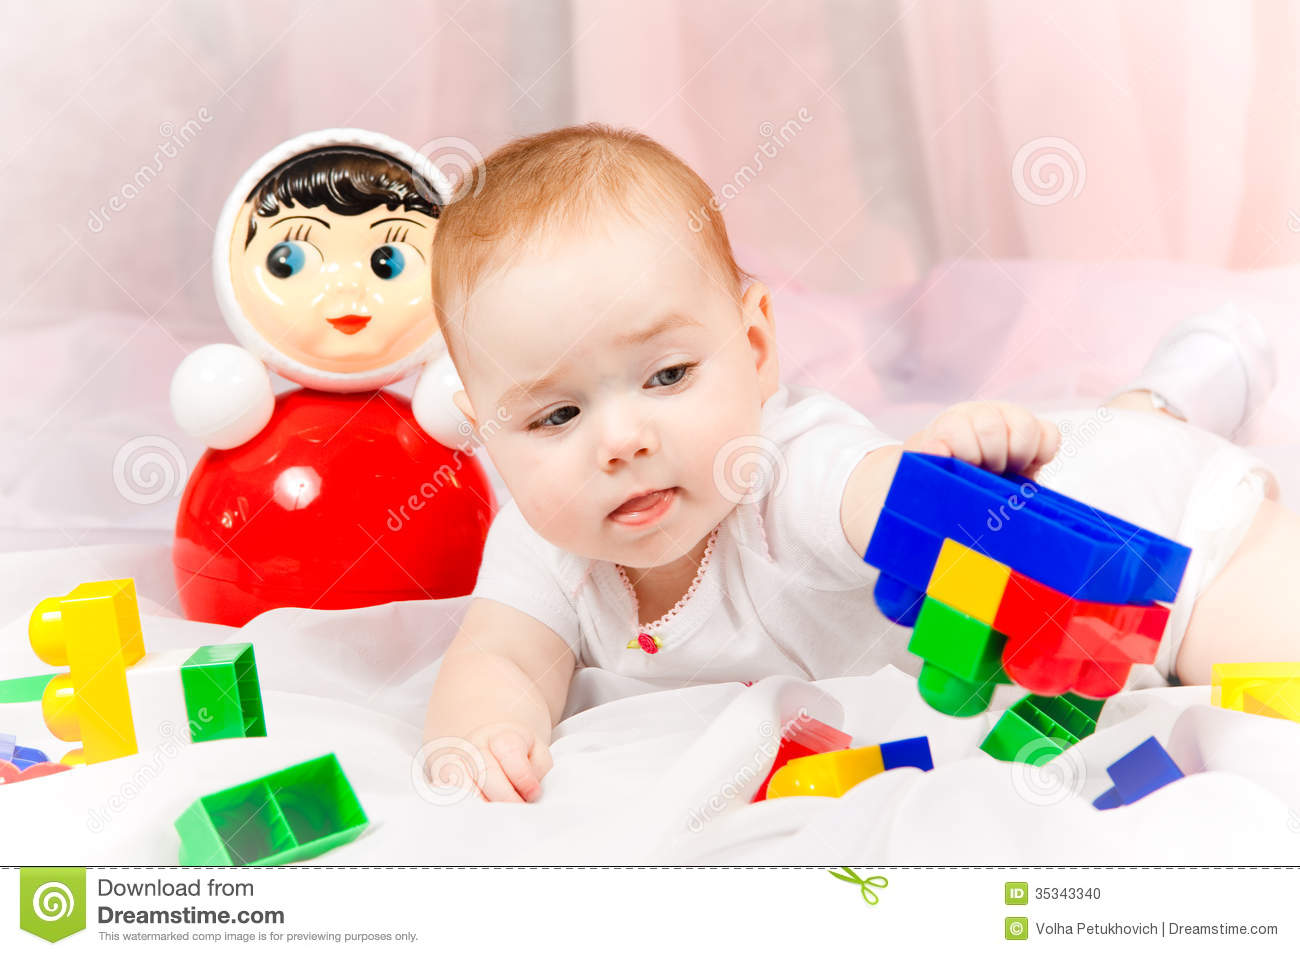 Lovable Baby With Toys Stock Photo Image 35343340